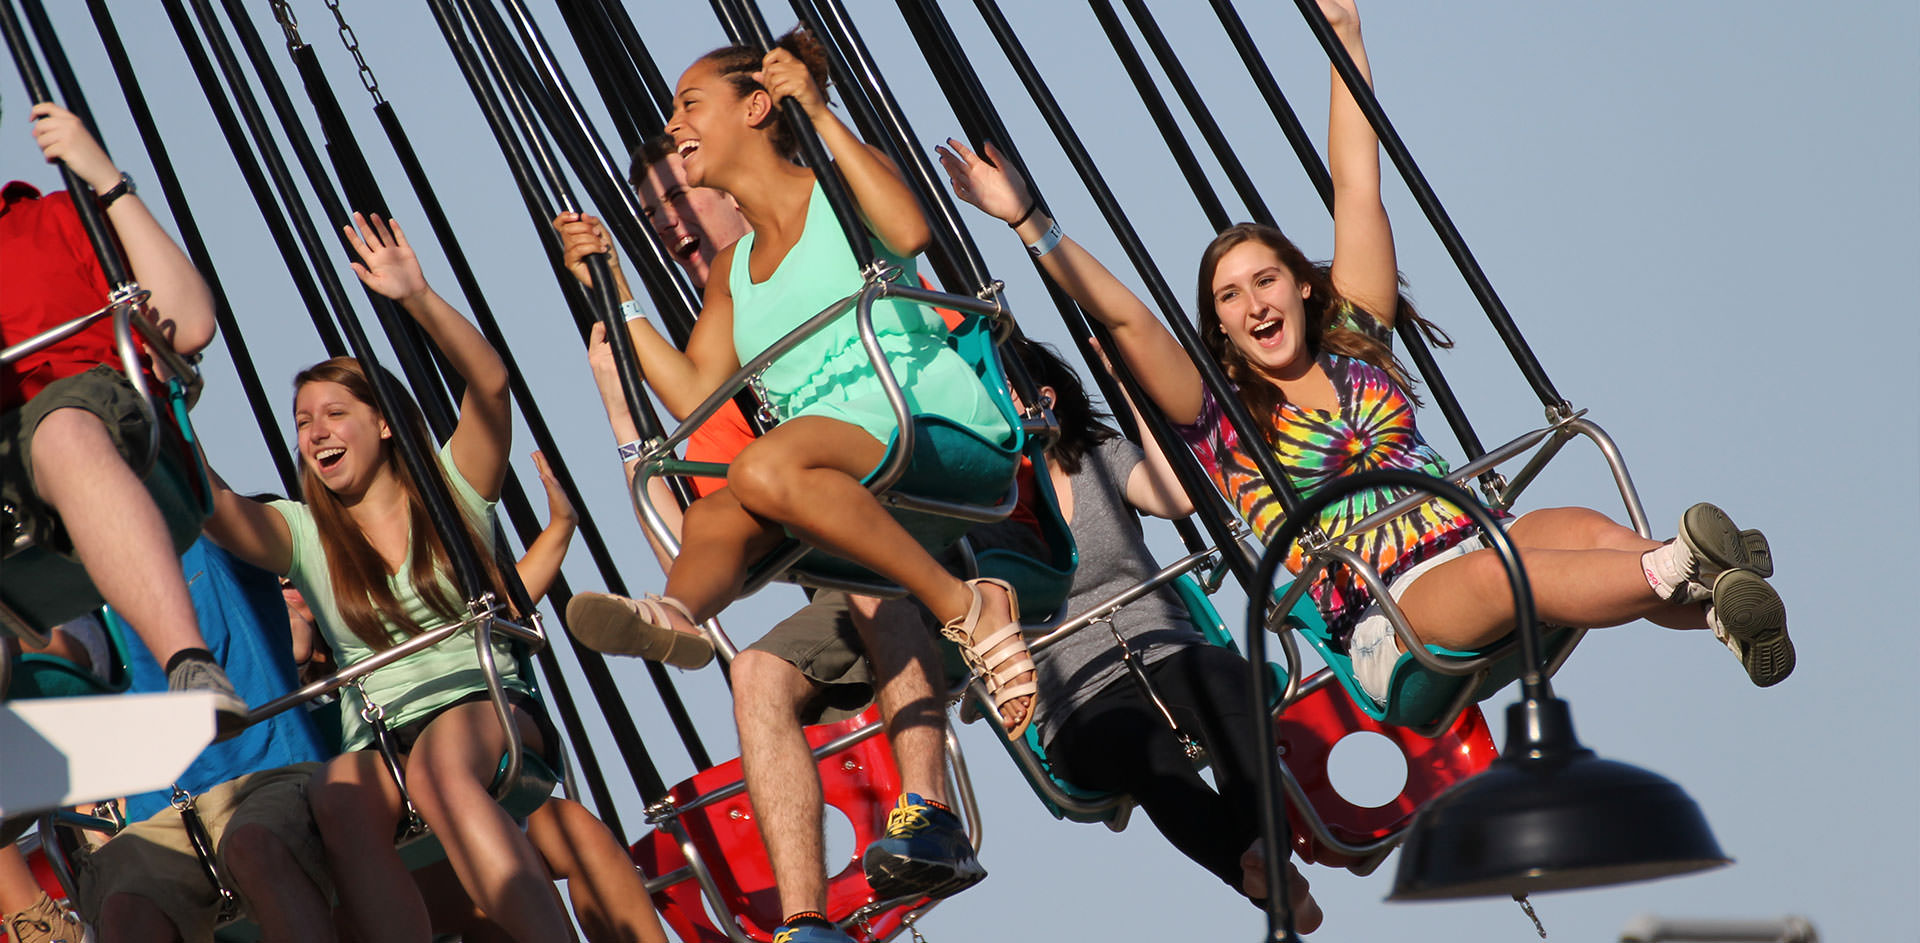 People ride in the air of the flying swing ride at the amusement park.